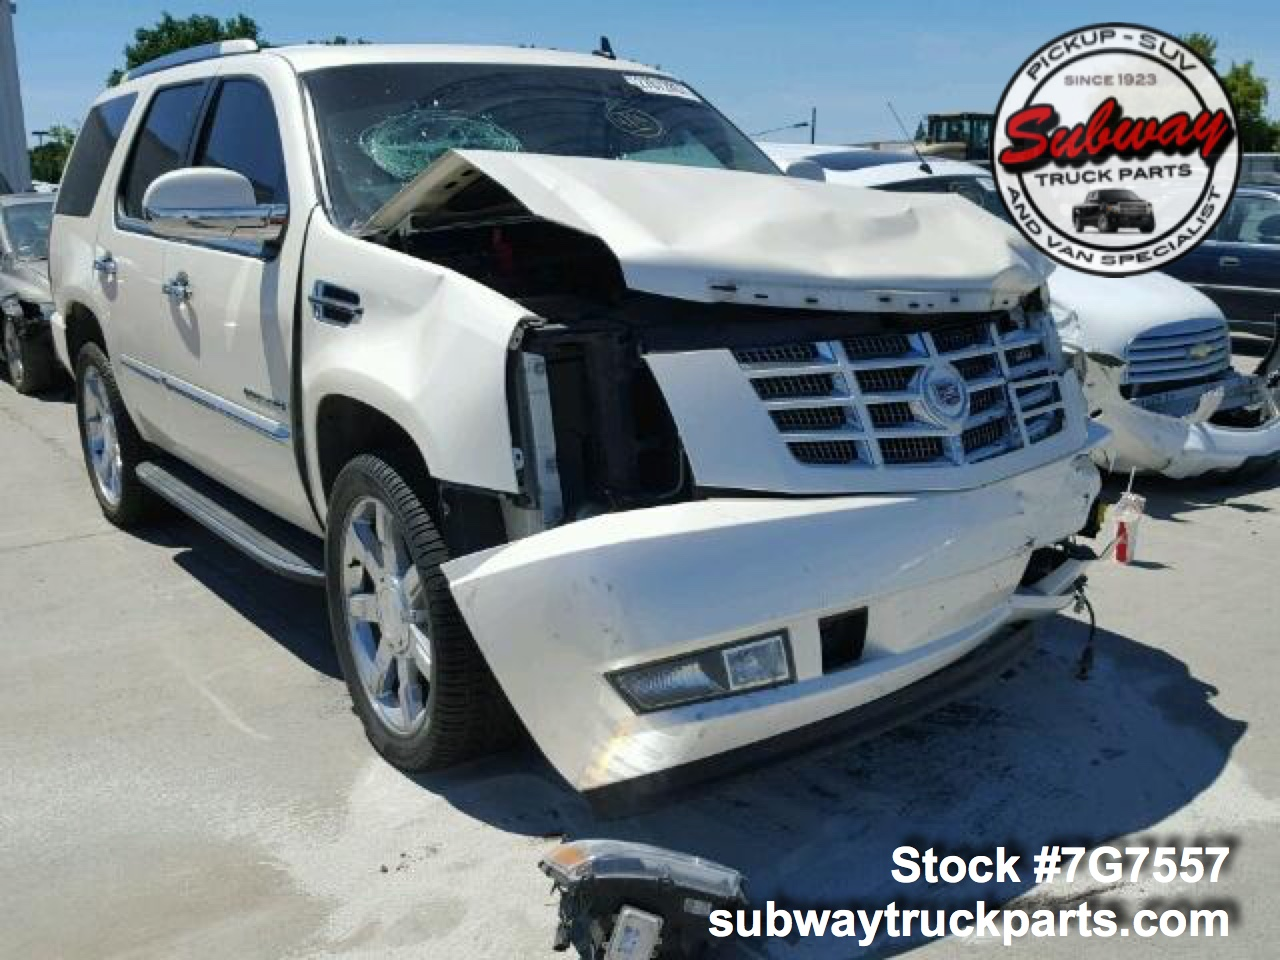 Used Parts 2009 Cadillac Escalade 6 2L 4x2 | Subway Truck